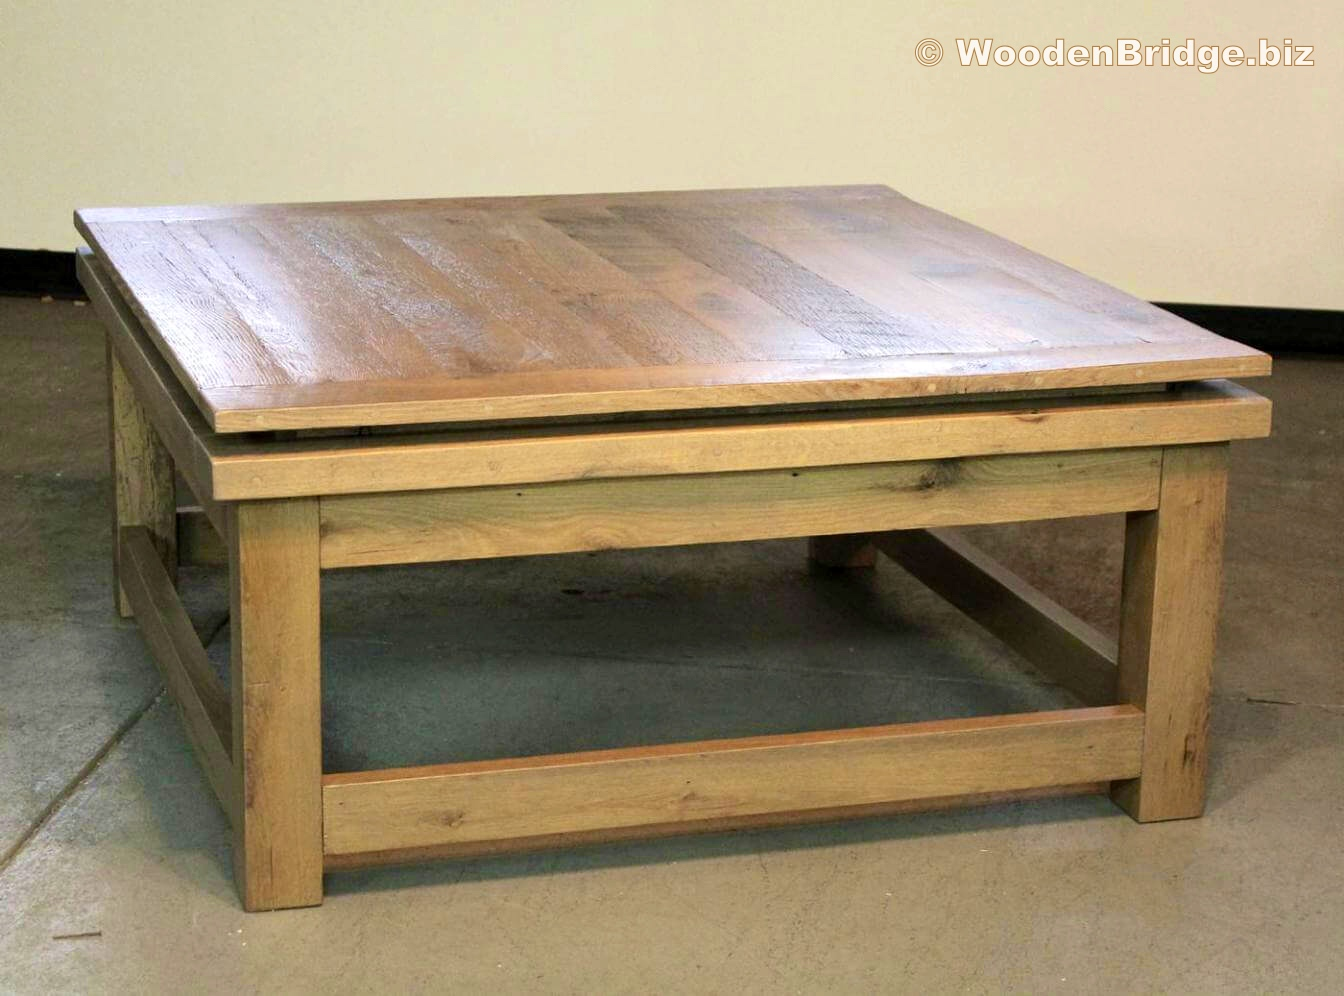 Reclaimed Wood Coffee Tables Ideas - 1344 x 996